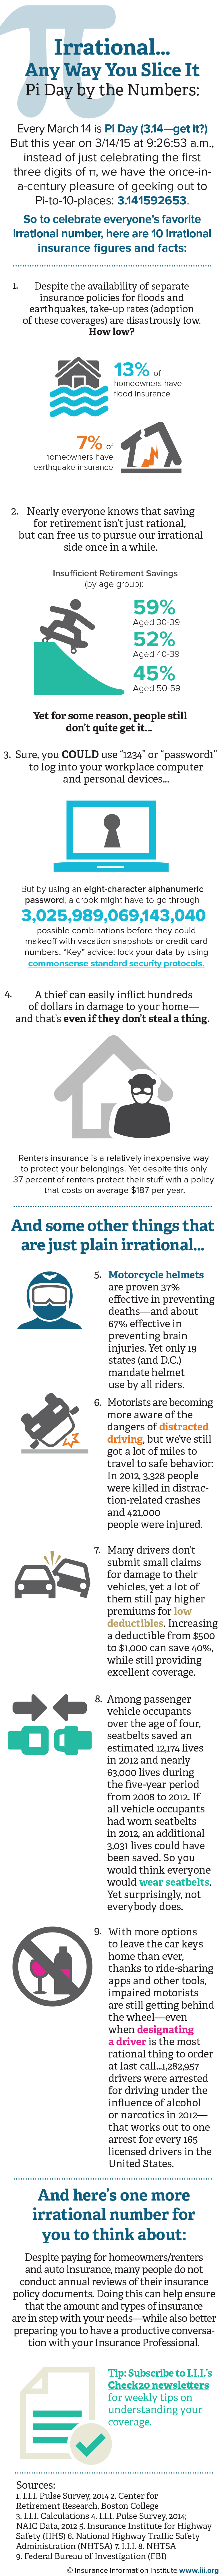 10 Irrational Numbers about insurance